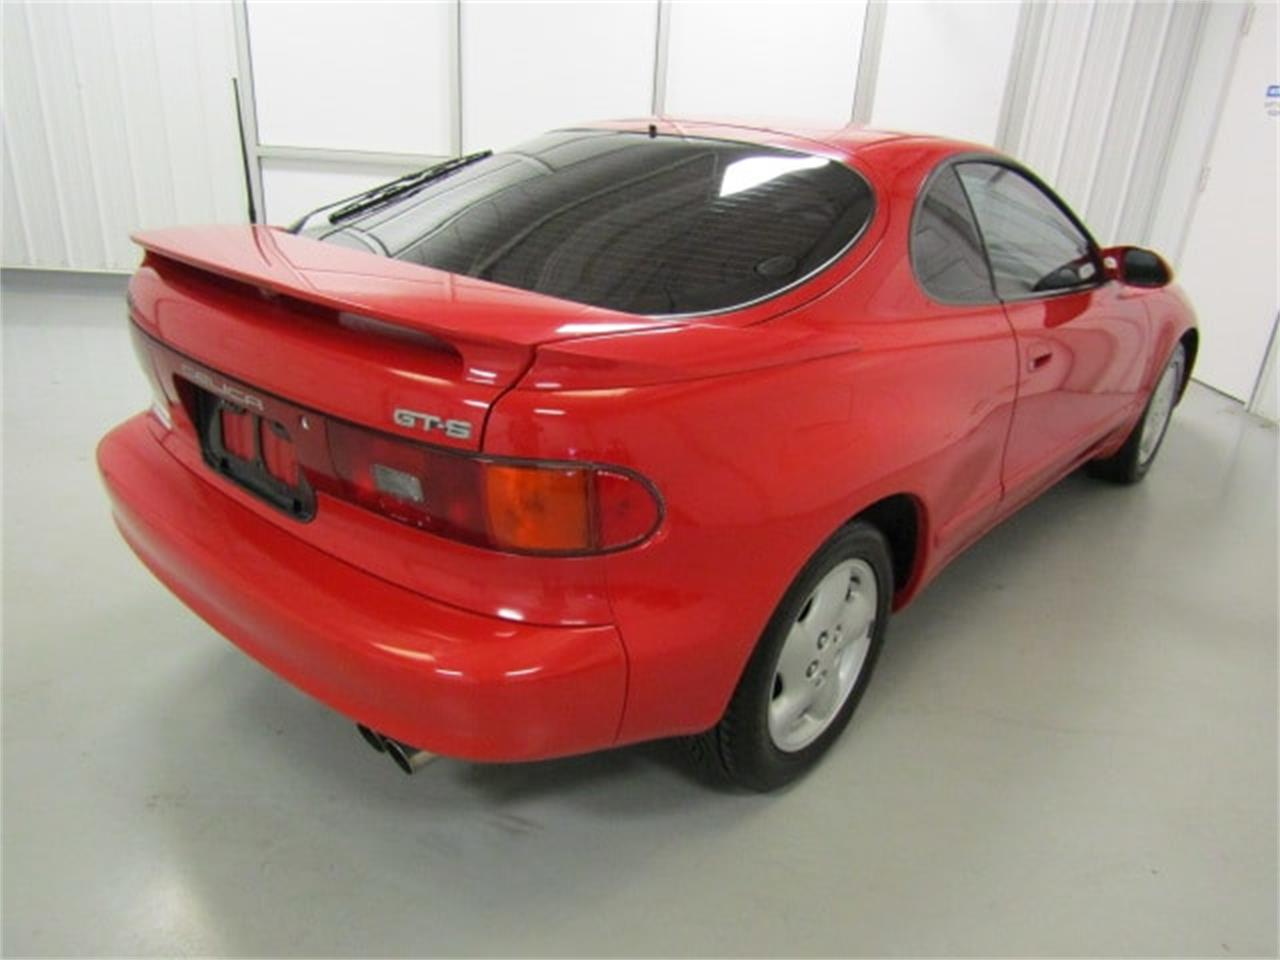 Large Picture of 1990 Toyota Celica located in Christiansburg Virginia - LI31